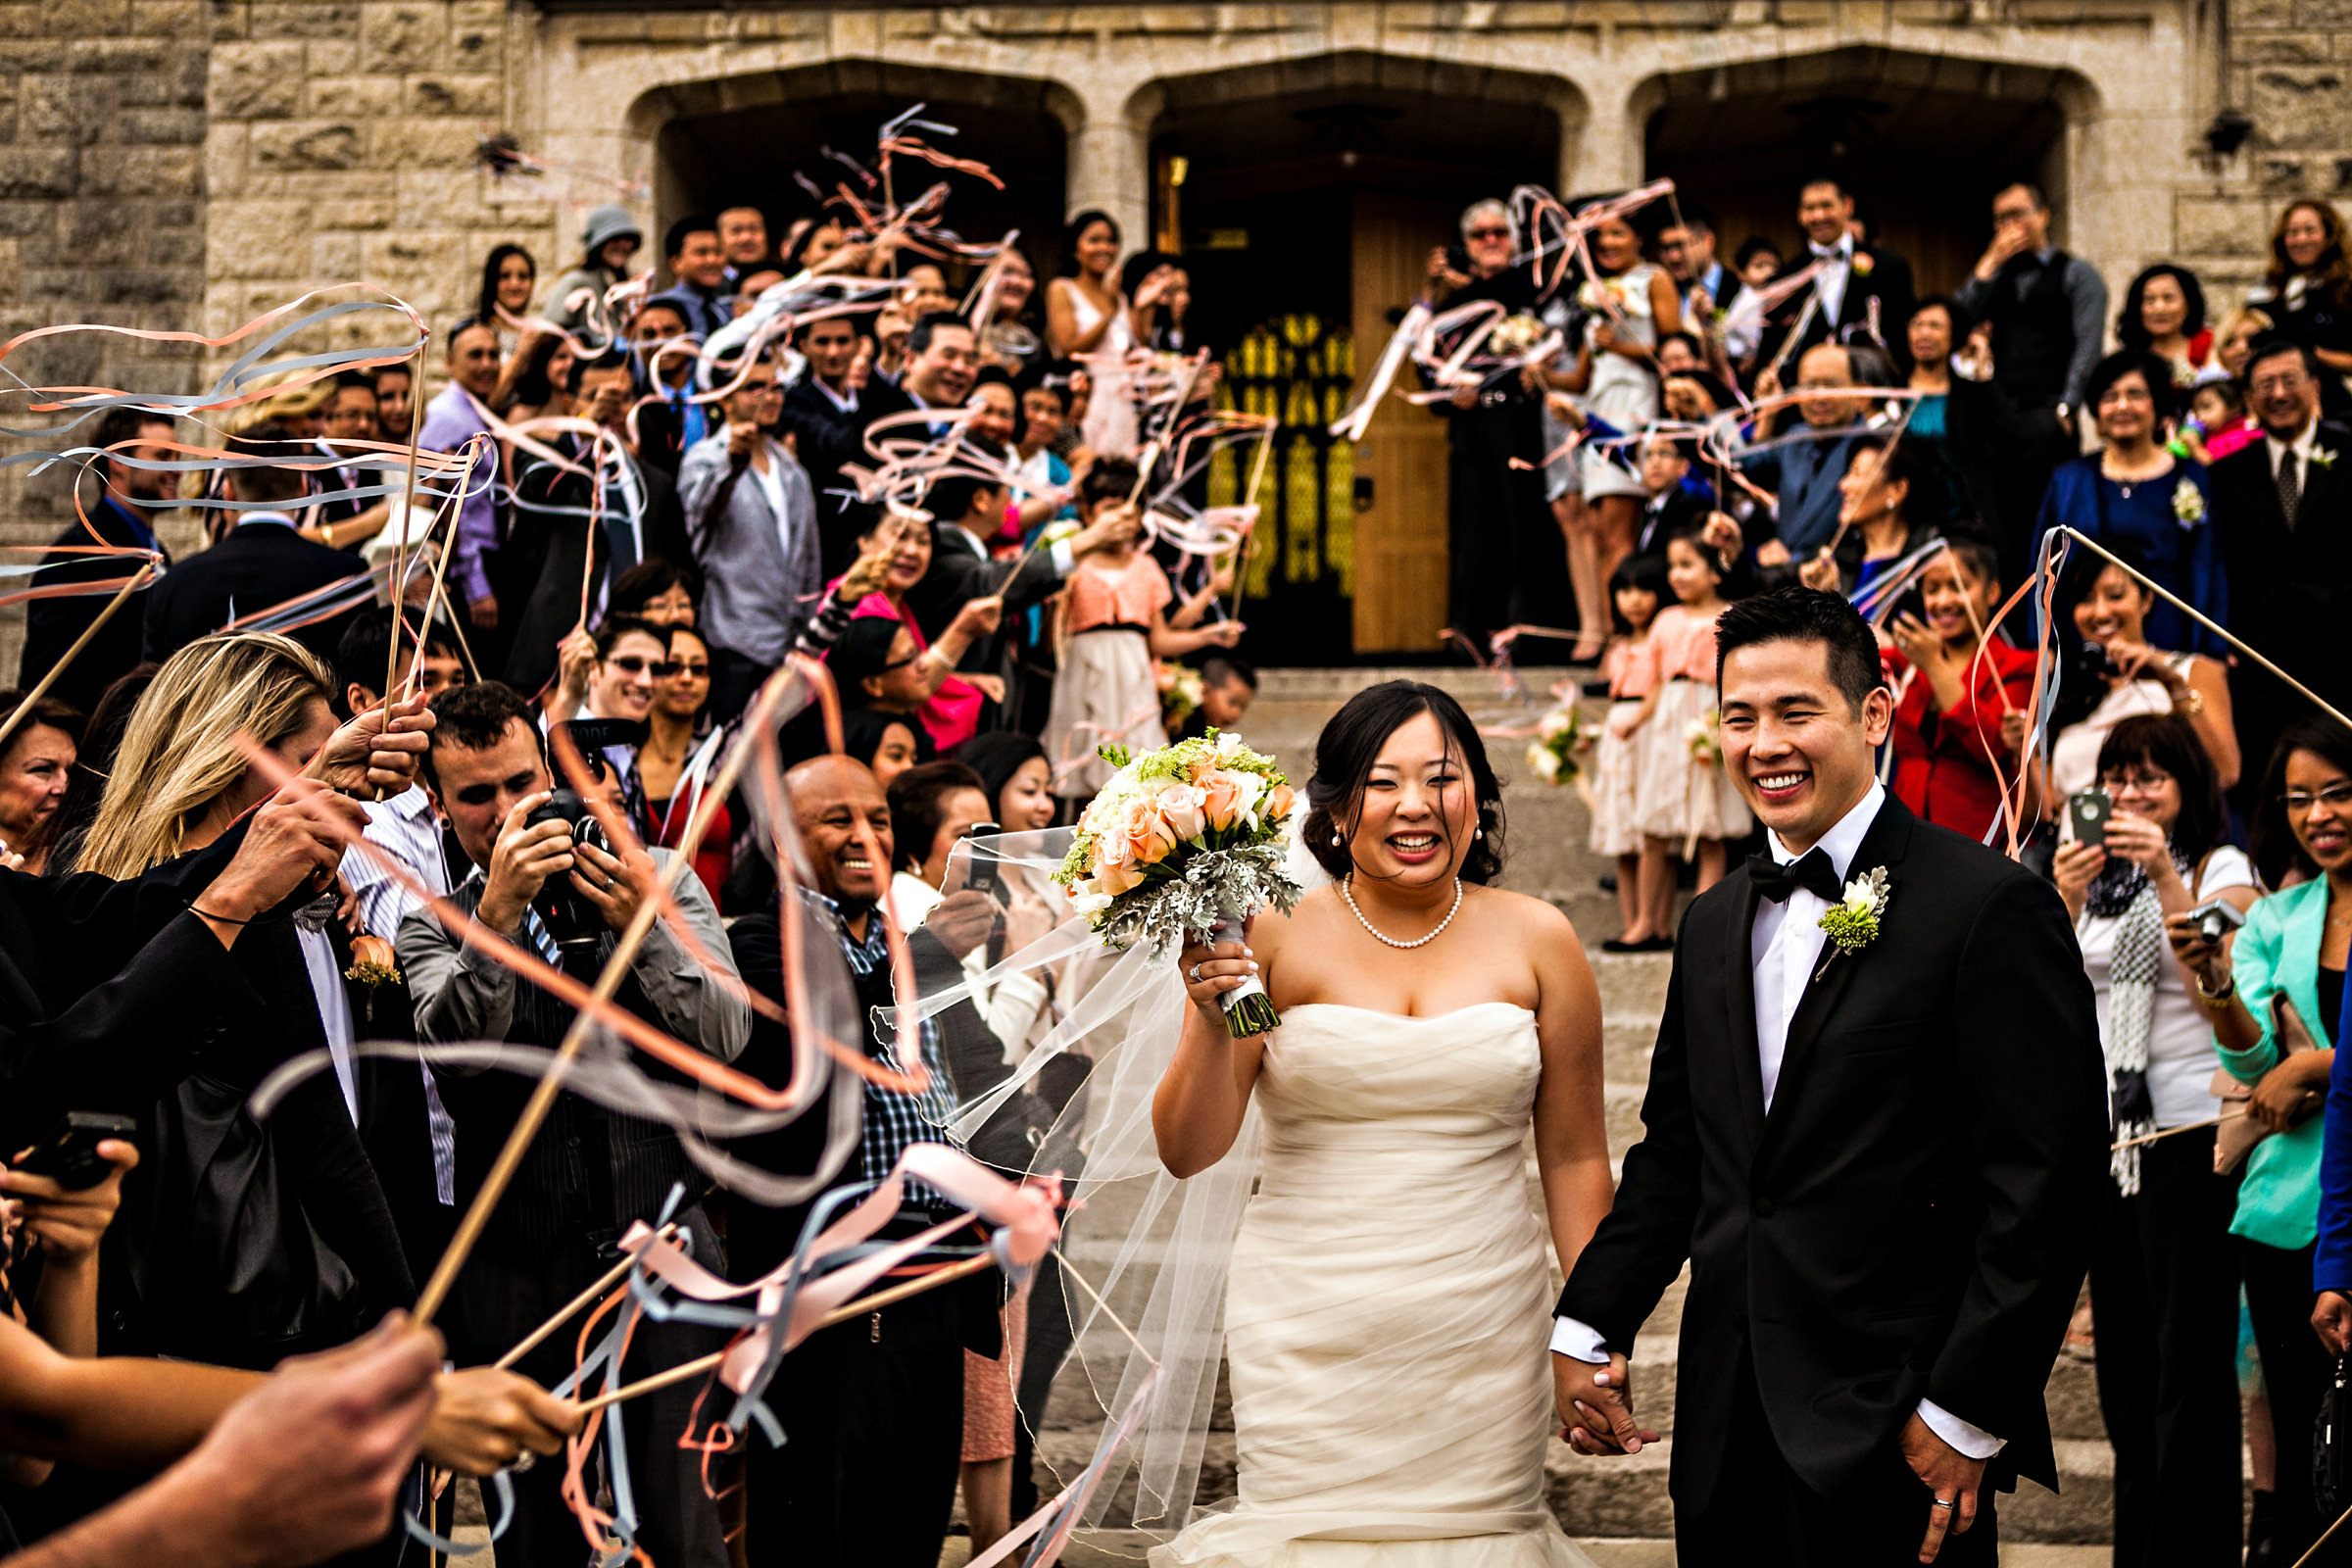 Couple leaves ceremony as guests wave ribbon streamers - photo by Moore Photography